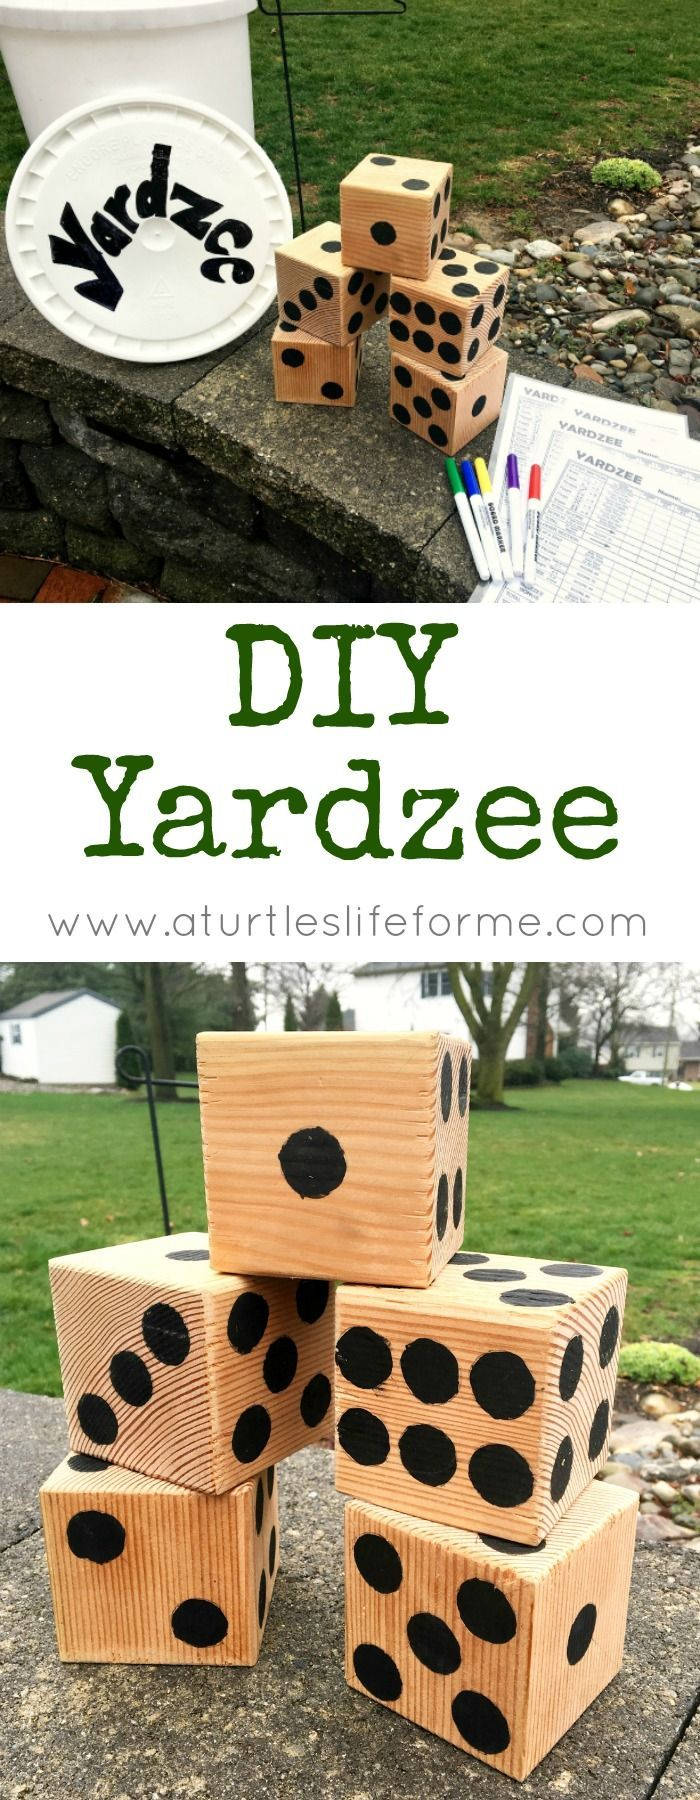 How To Make A DIY Yardzee Backyard Game